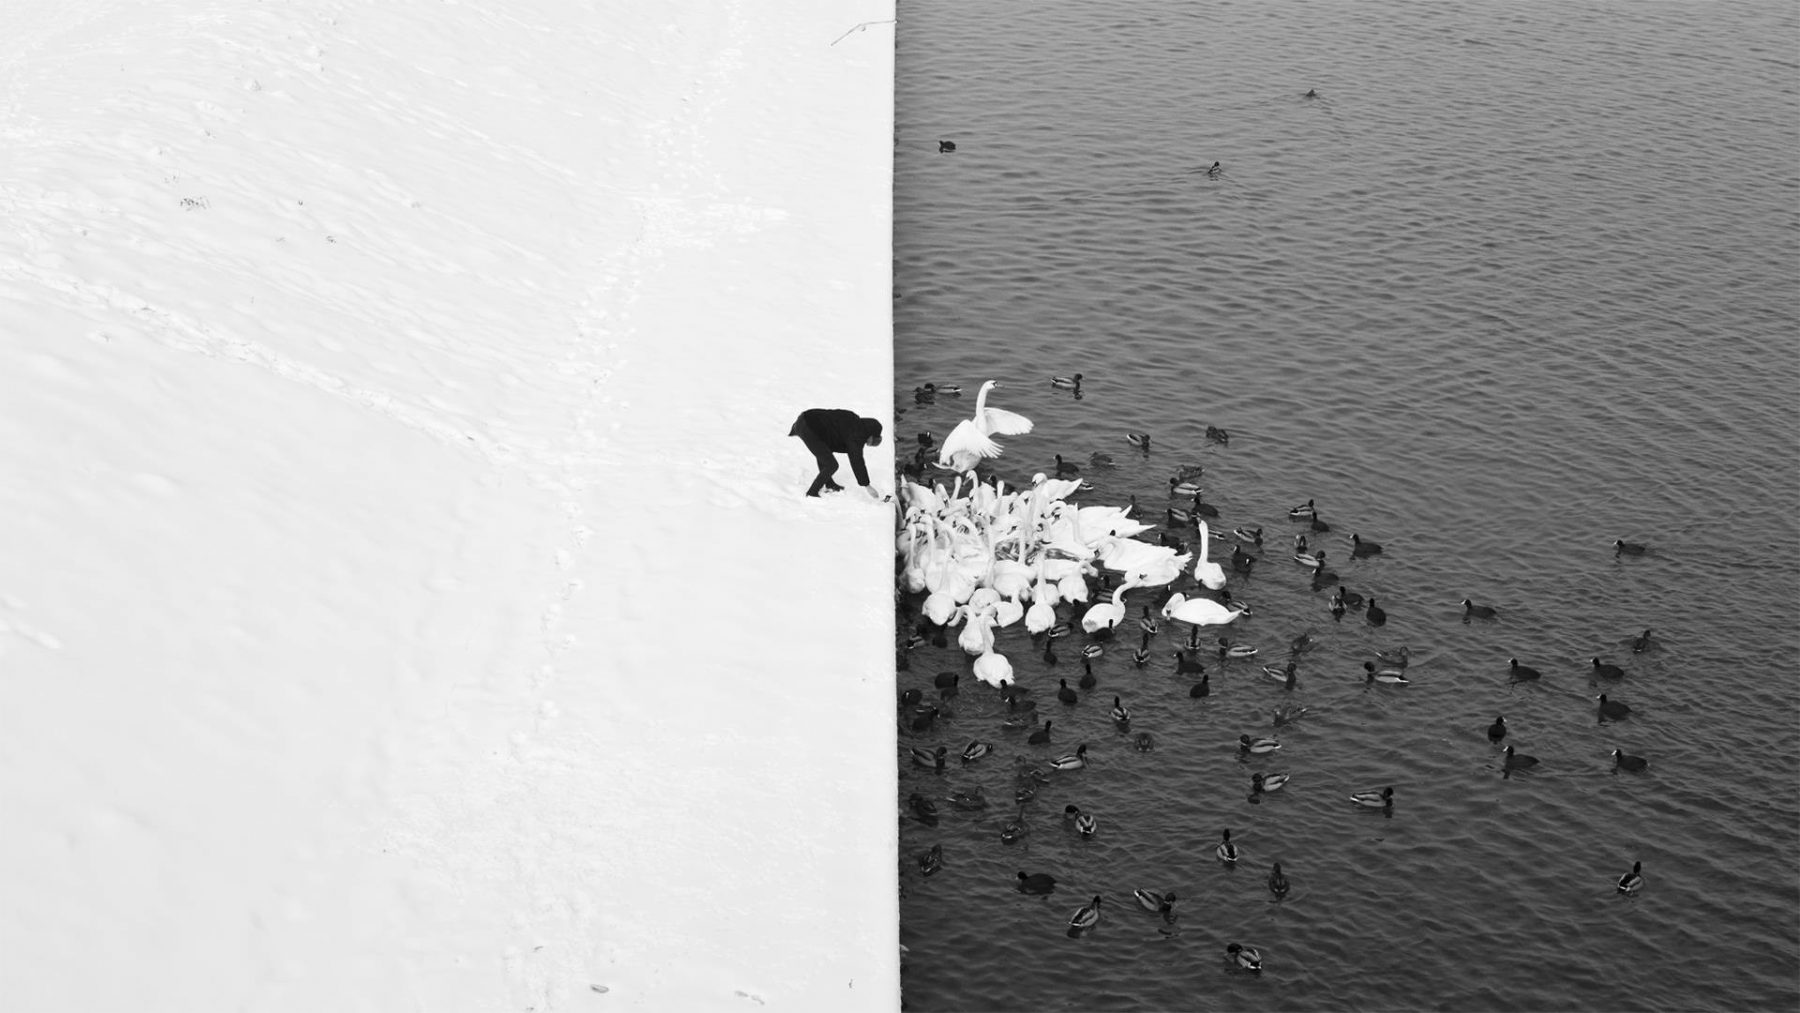 Black and white photograph of man feeding swans and ducks by Marcin Ryczek